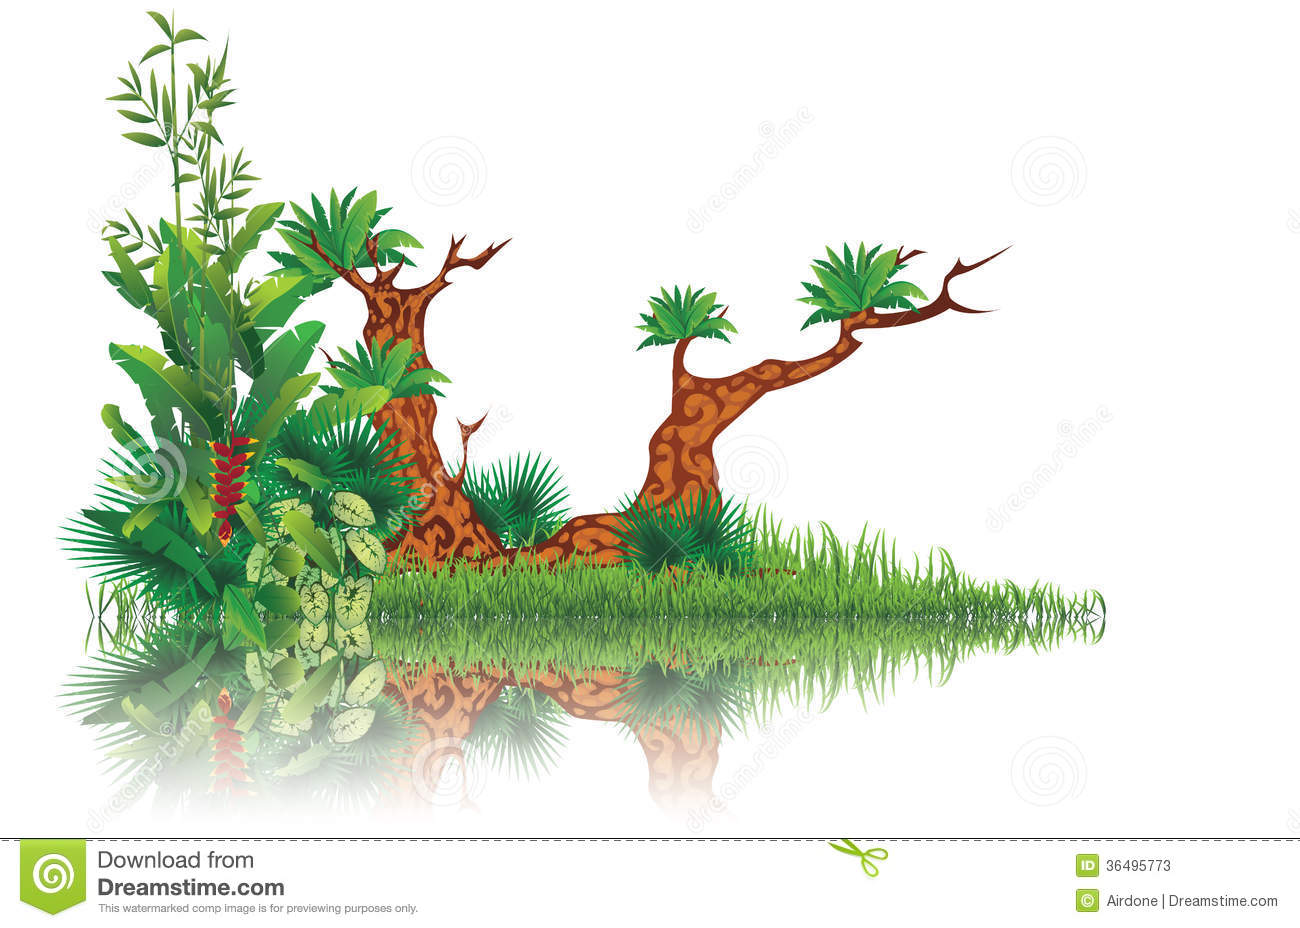 Swamp clipart #6, Download drawings